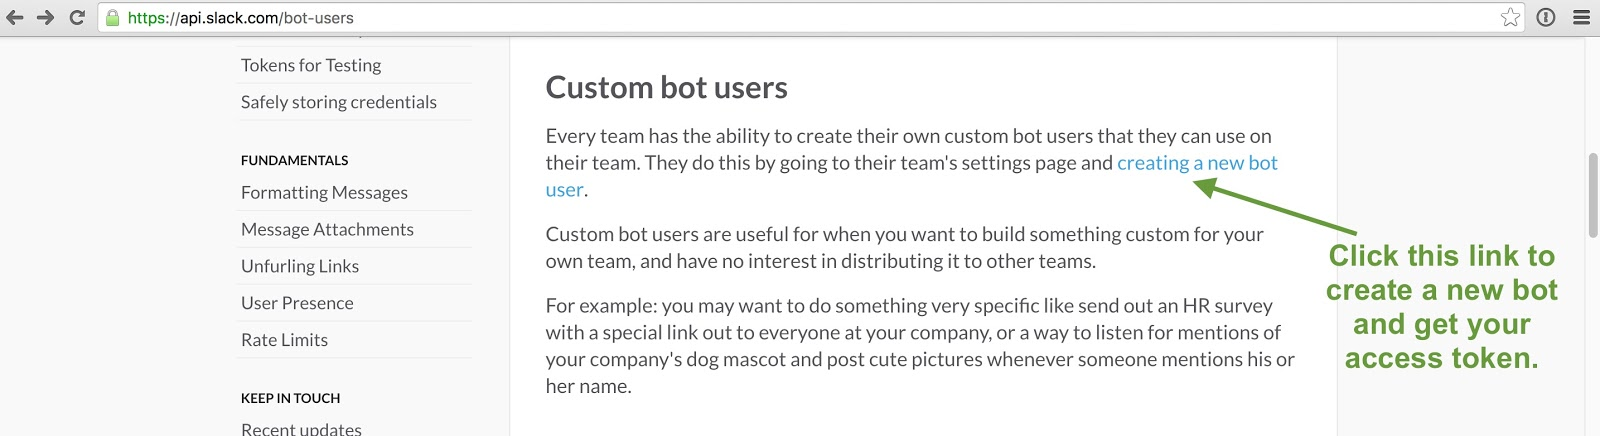 Custom bot users webpage.